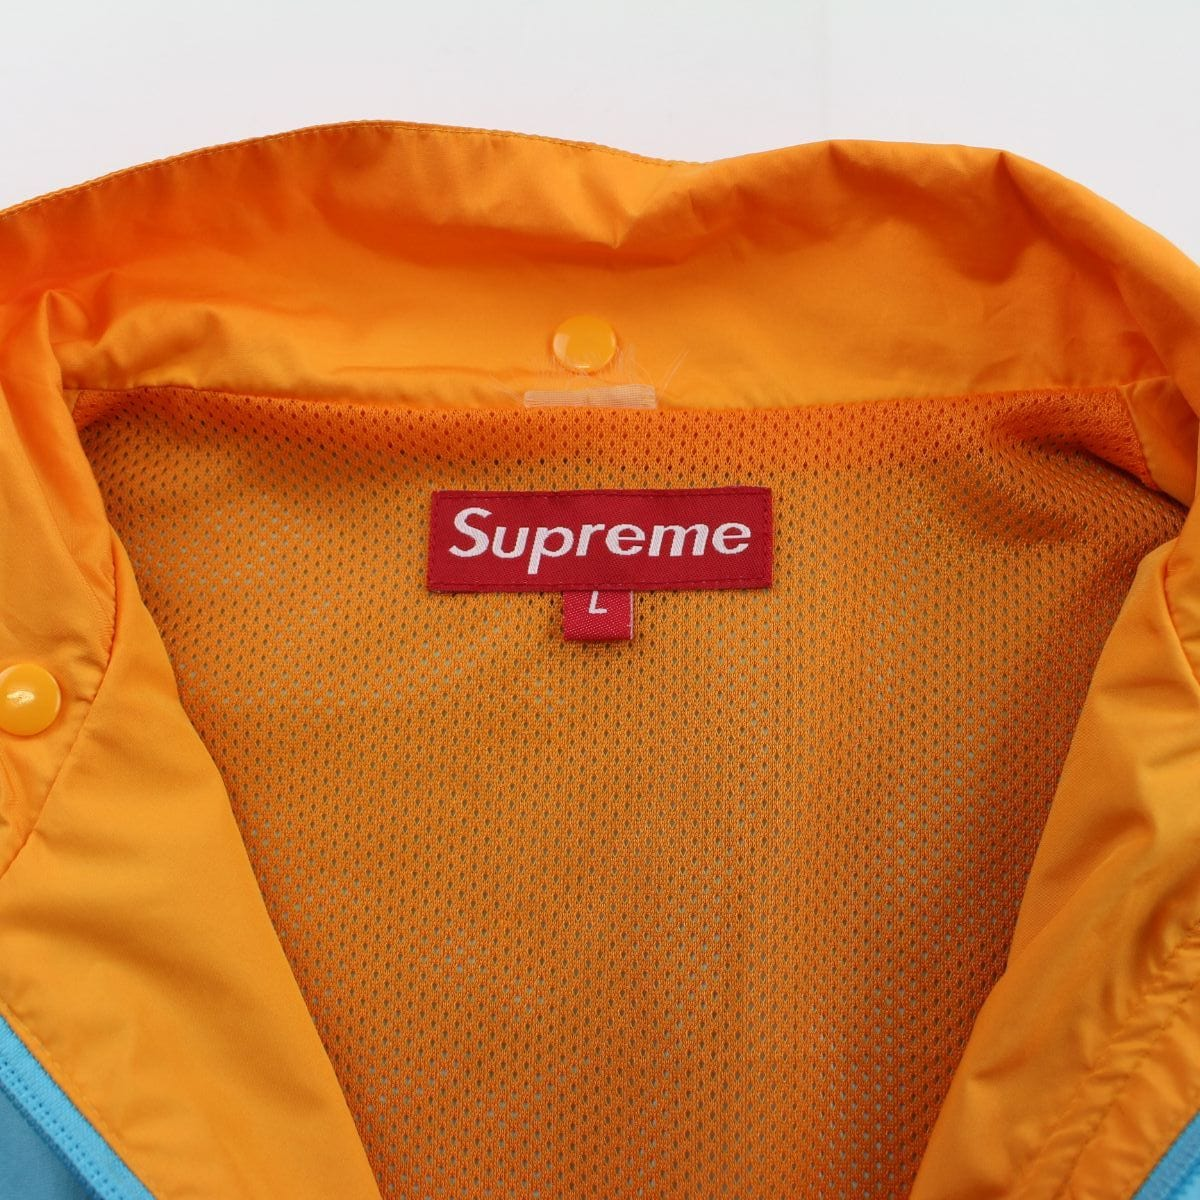 Supreme Baby Blue & Yellow Track Jacket - SaruGeneral